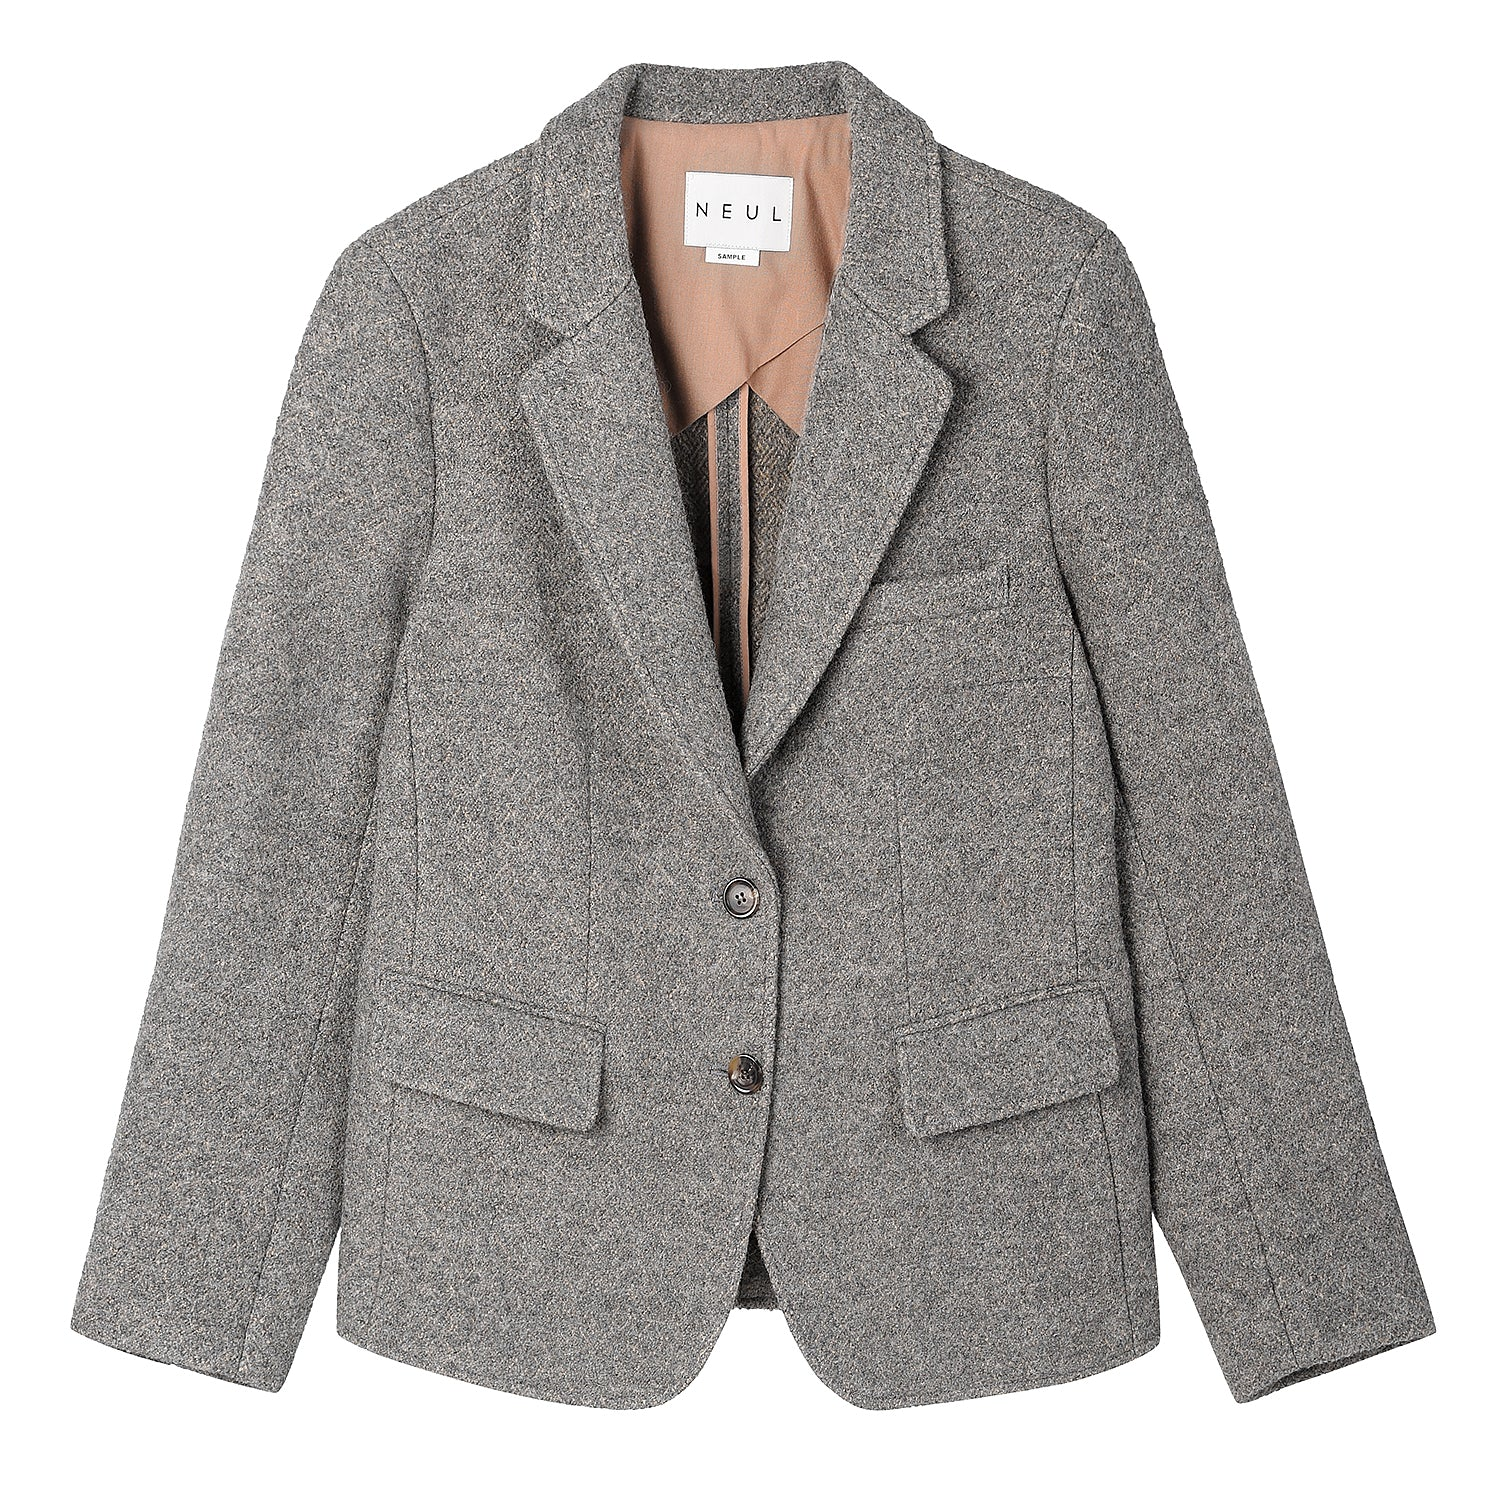 Neul - Retro wool felt jacket